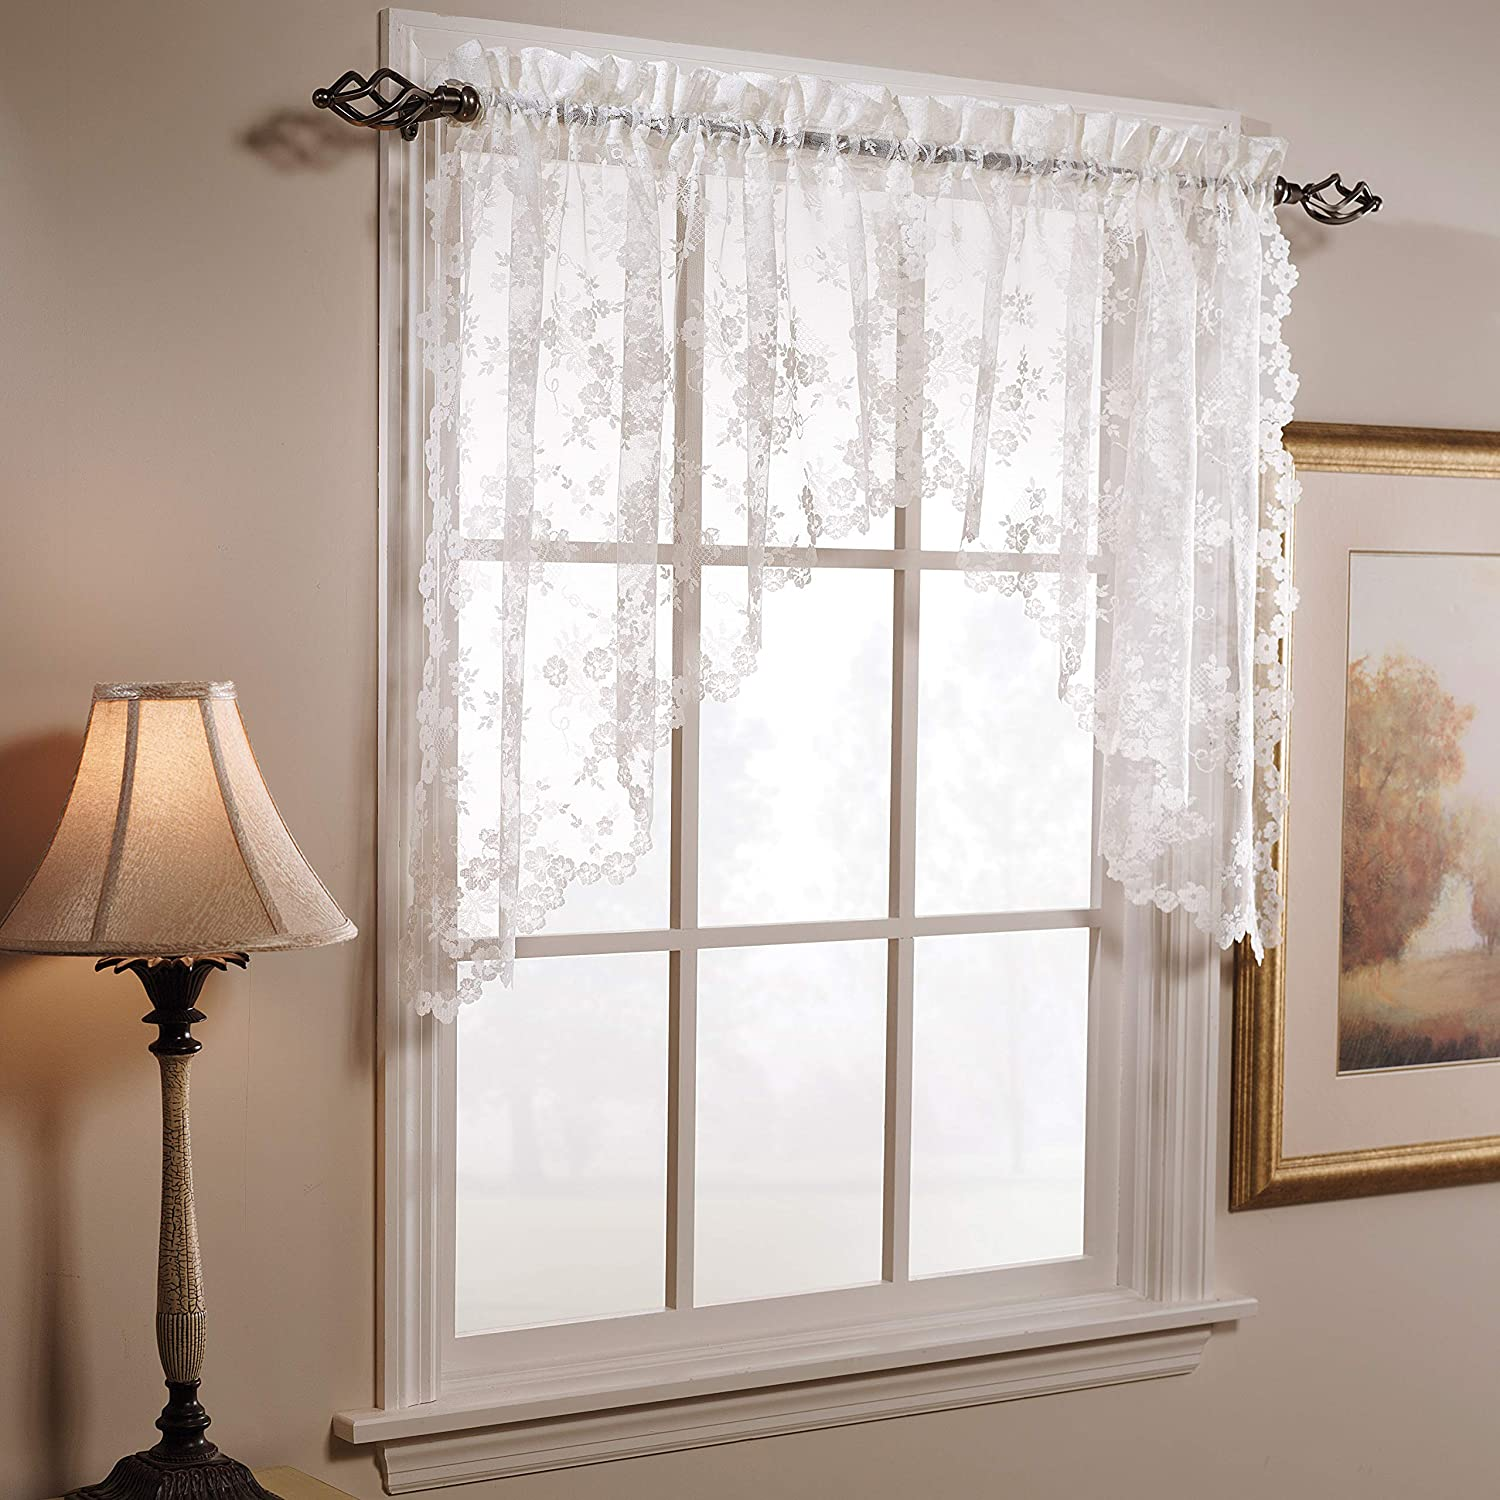 SKL Home by Saturday Knight Ltd. Petite Fleur Swag Valance Pair, White, 78 inches x 30 inches